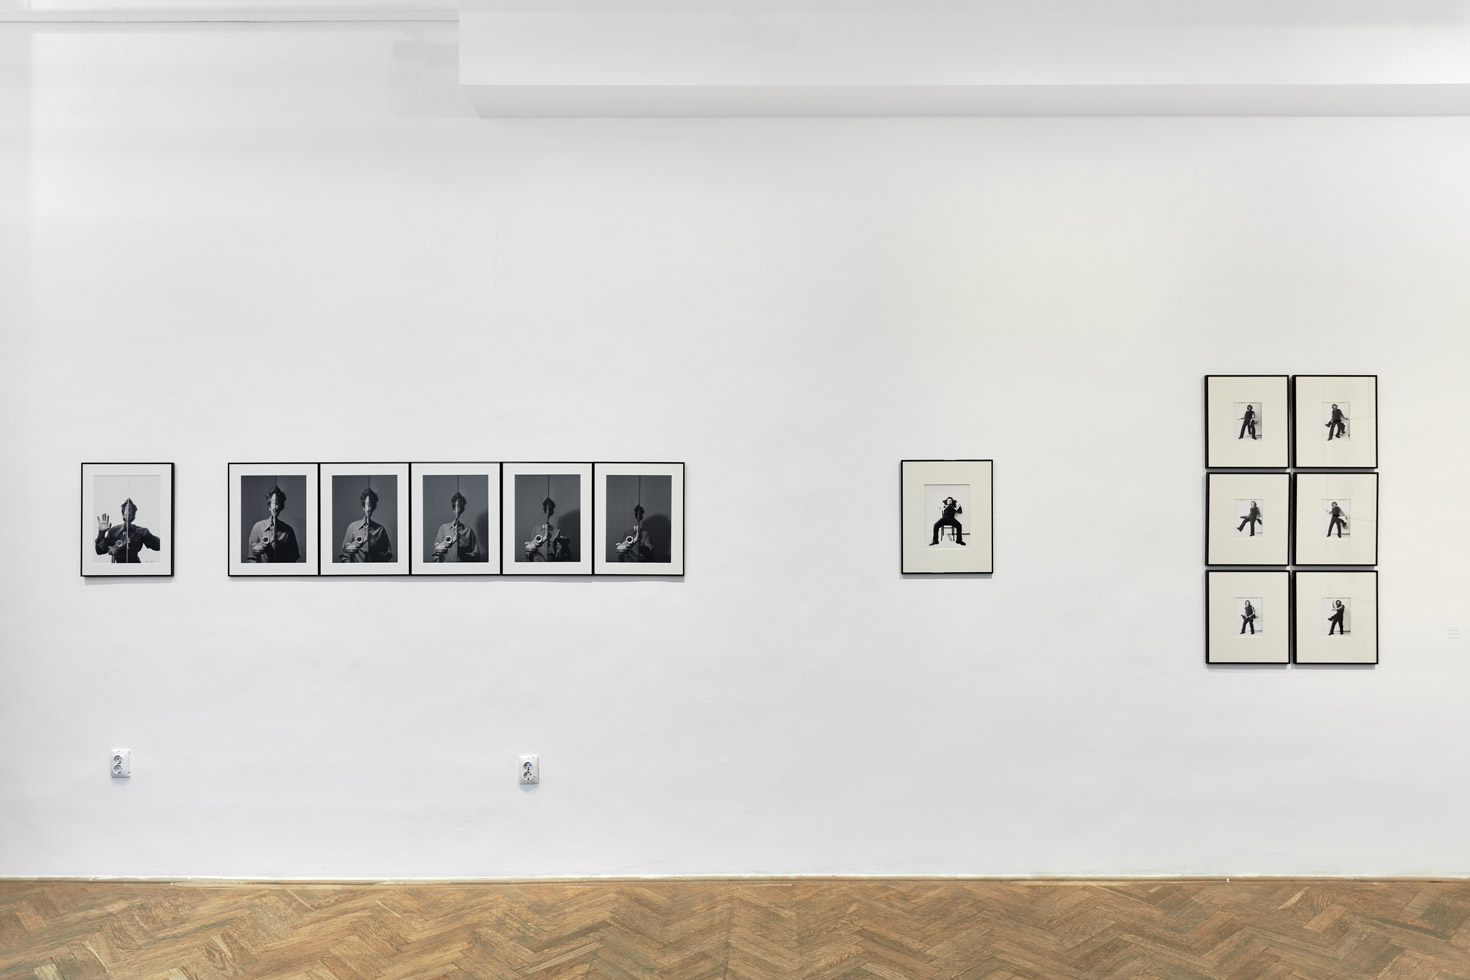 Géza Perneczky, Mirrors Exhibition at Robert Capa Center, Budapest